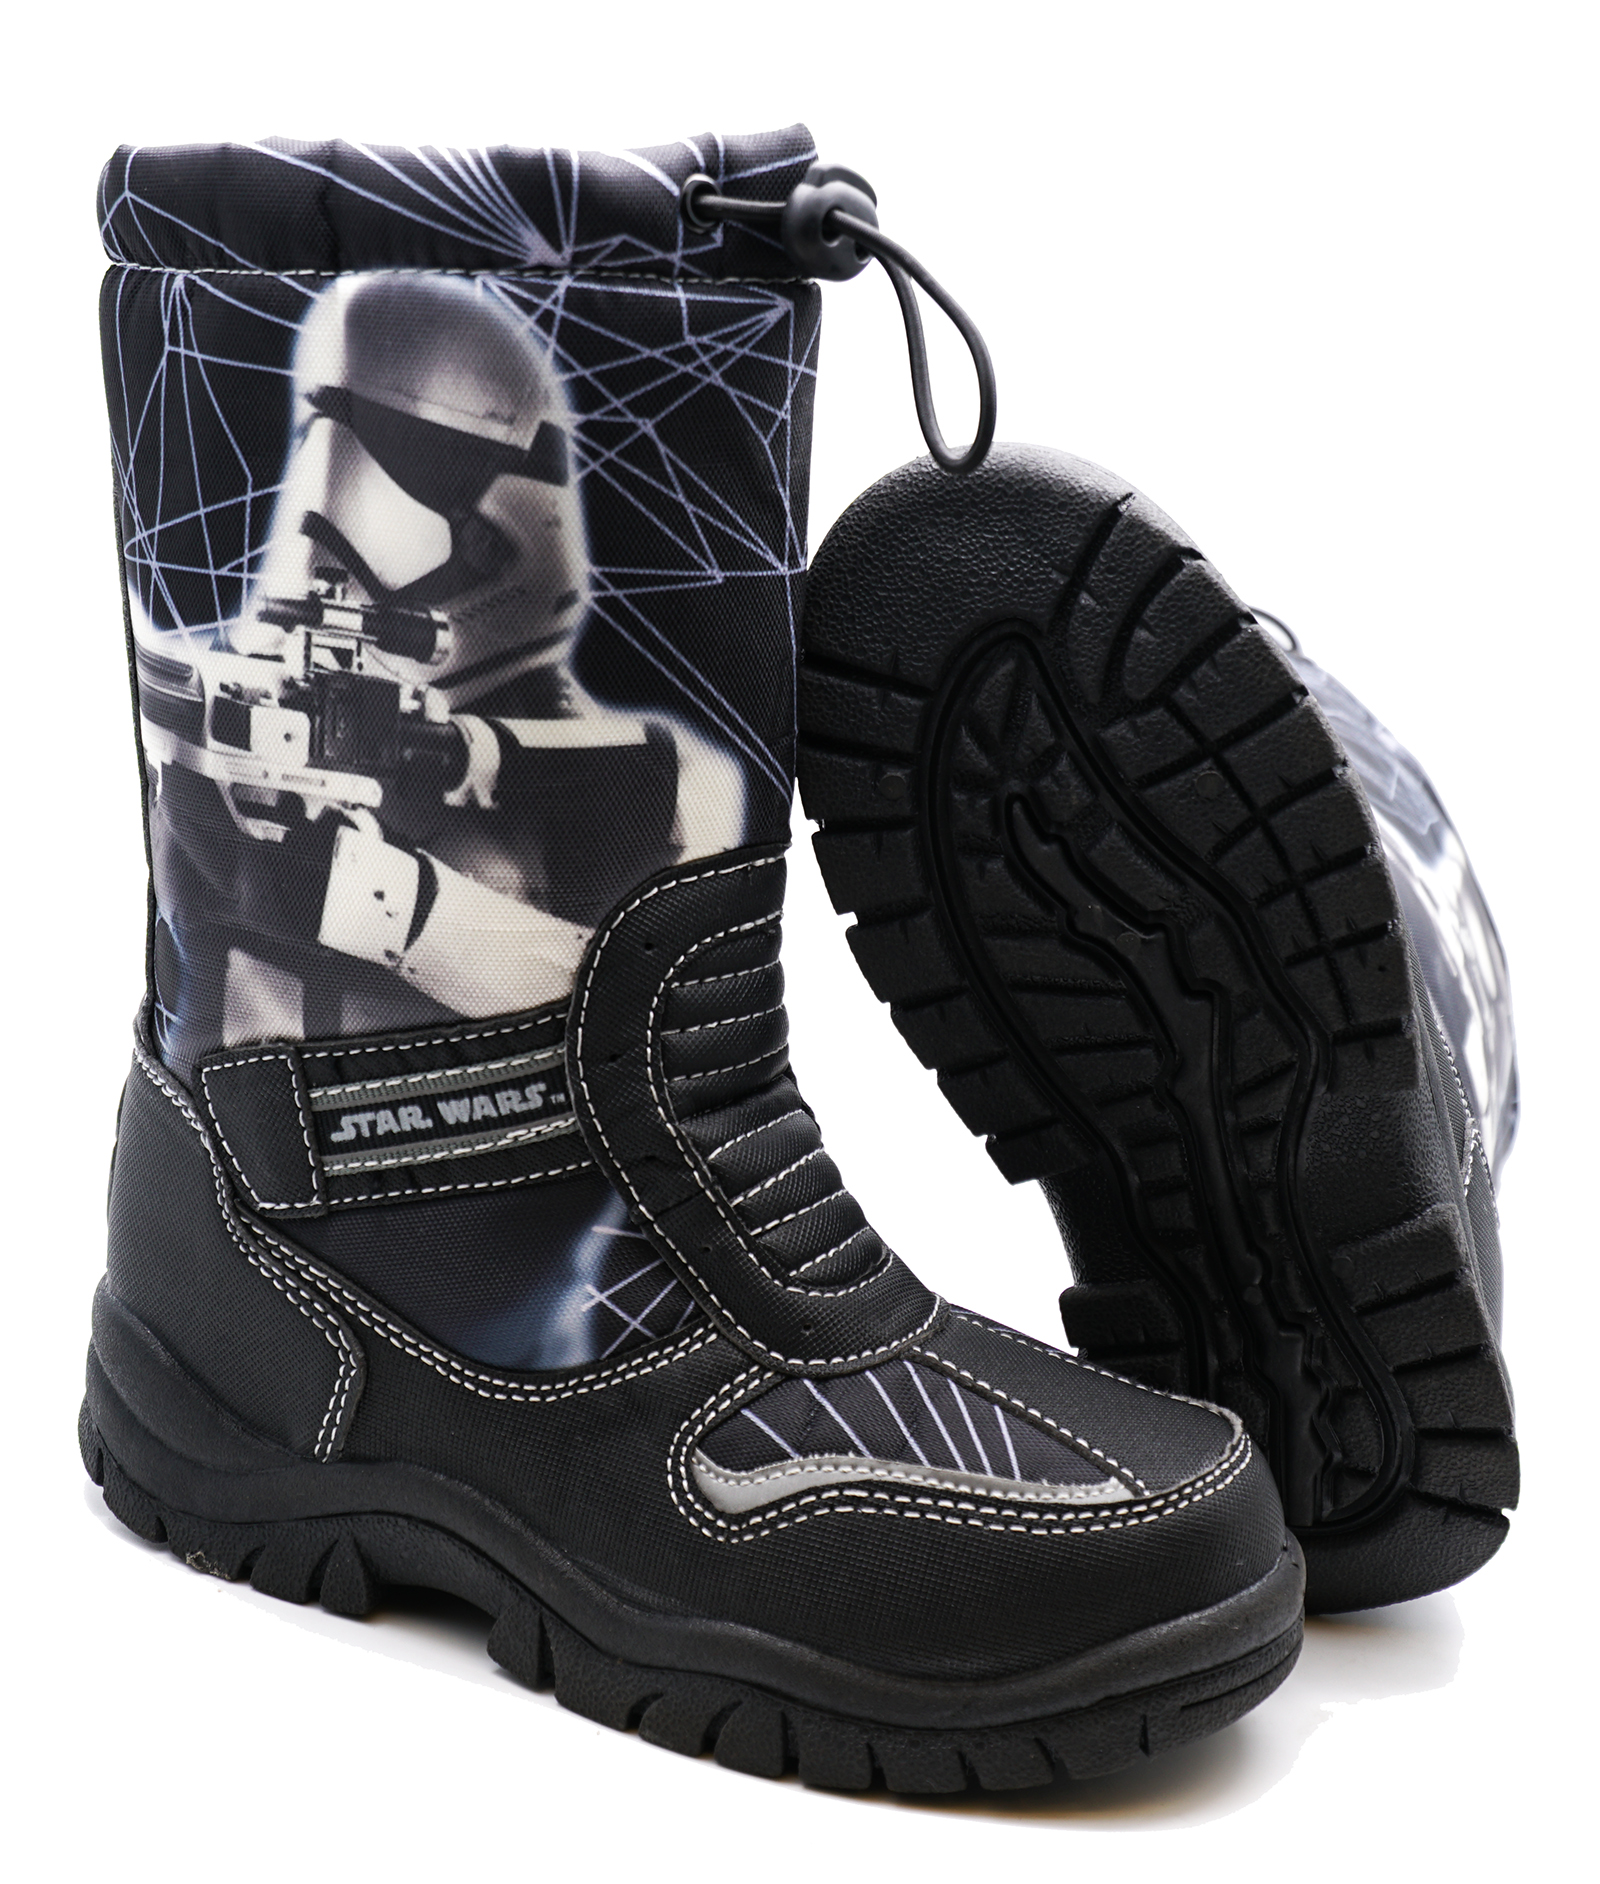 thumbnail 11 - BOYS-KIDS-CHILDRENS-STAR-WARS-WARM-WINTER-RAIN-SPLASH-SNOW-BOOTS-WELLIES-8-2